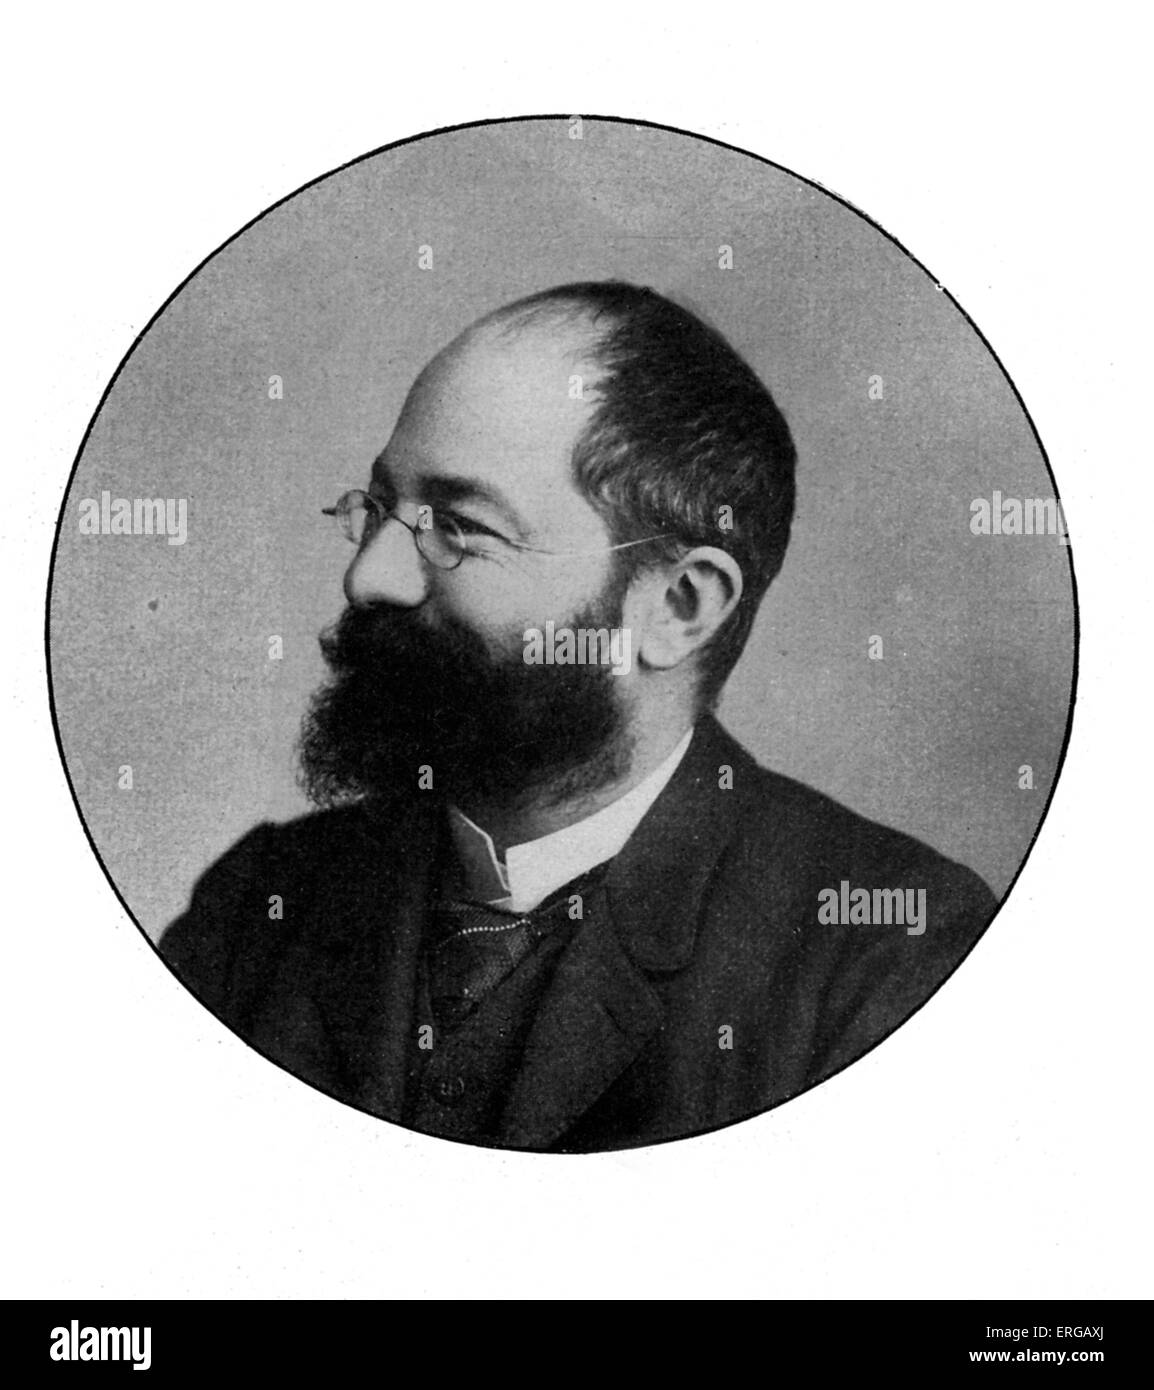 Édouard Michelin  (1859–1940) - French industrialist who, with his brother André (1853-1931), founded - Stock Image